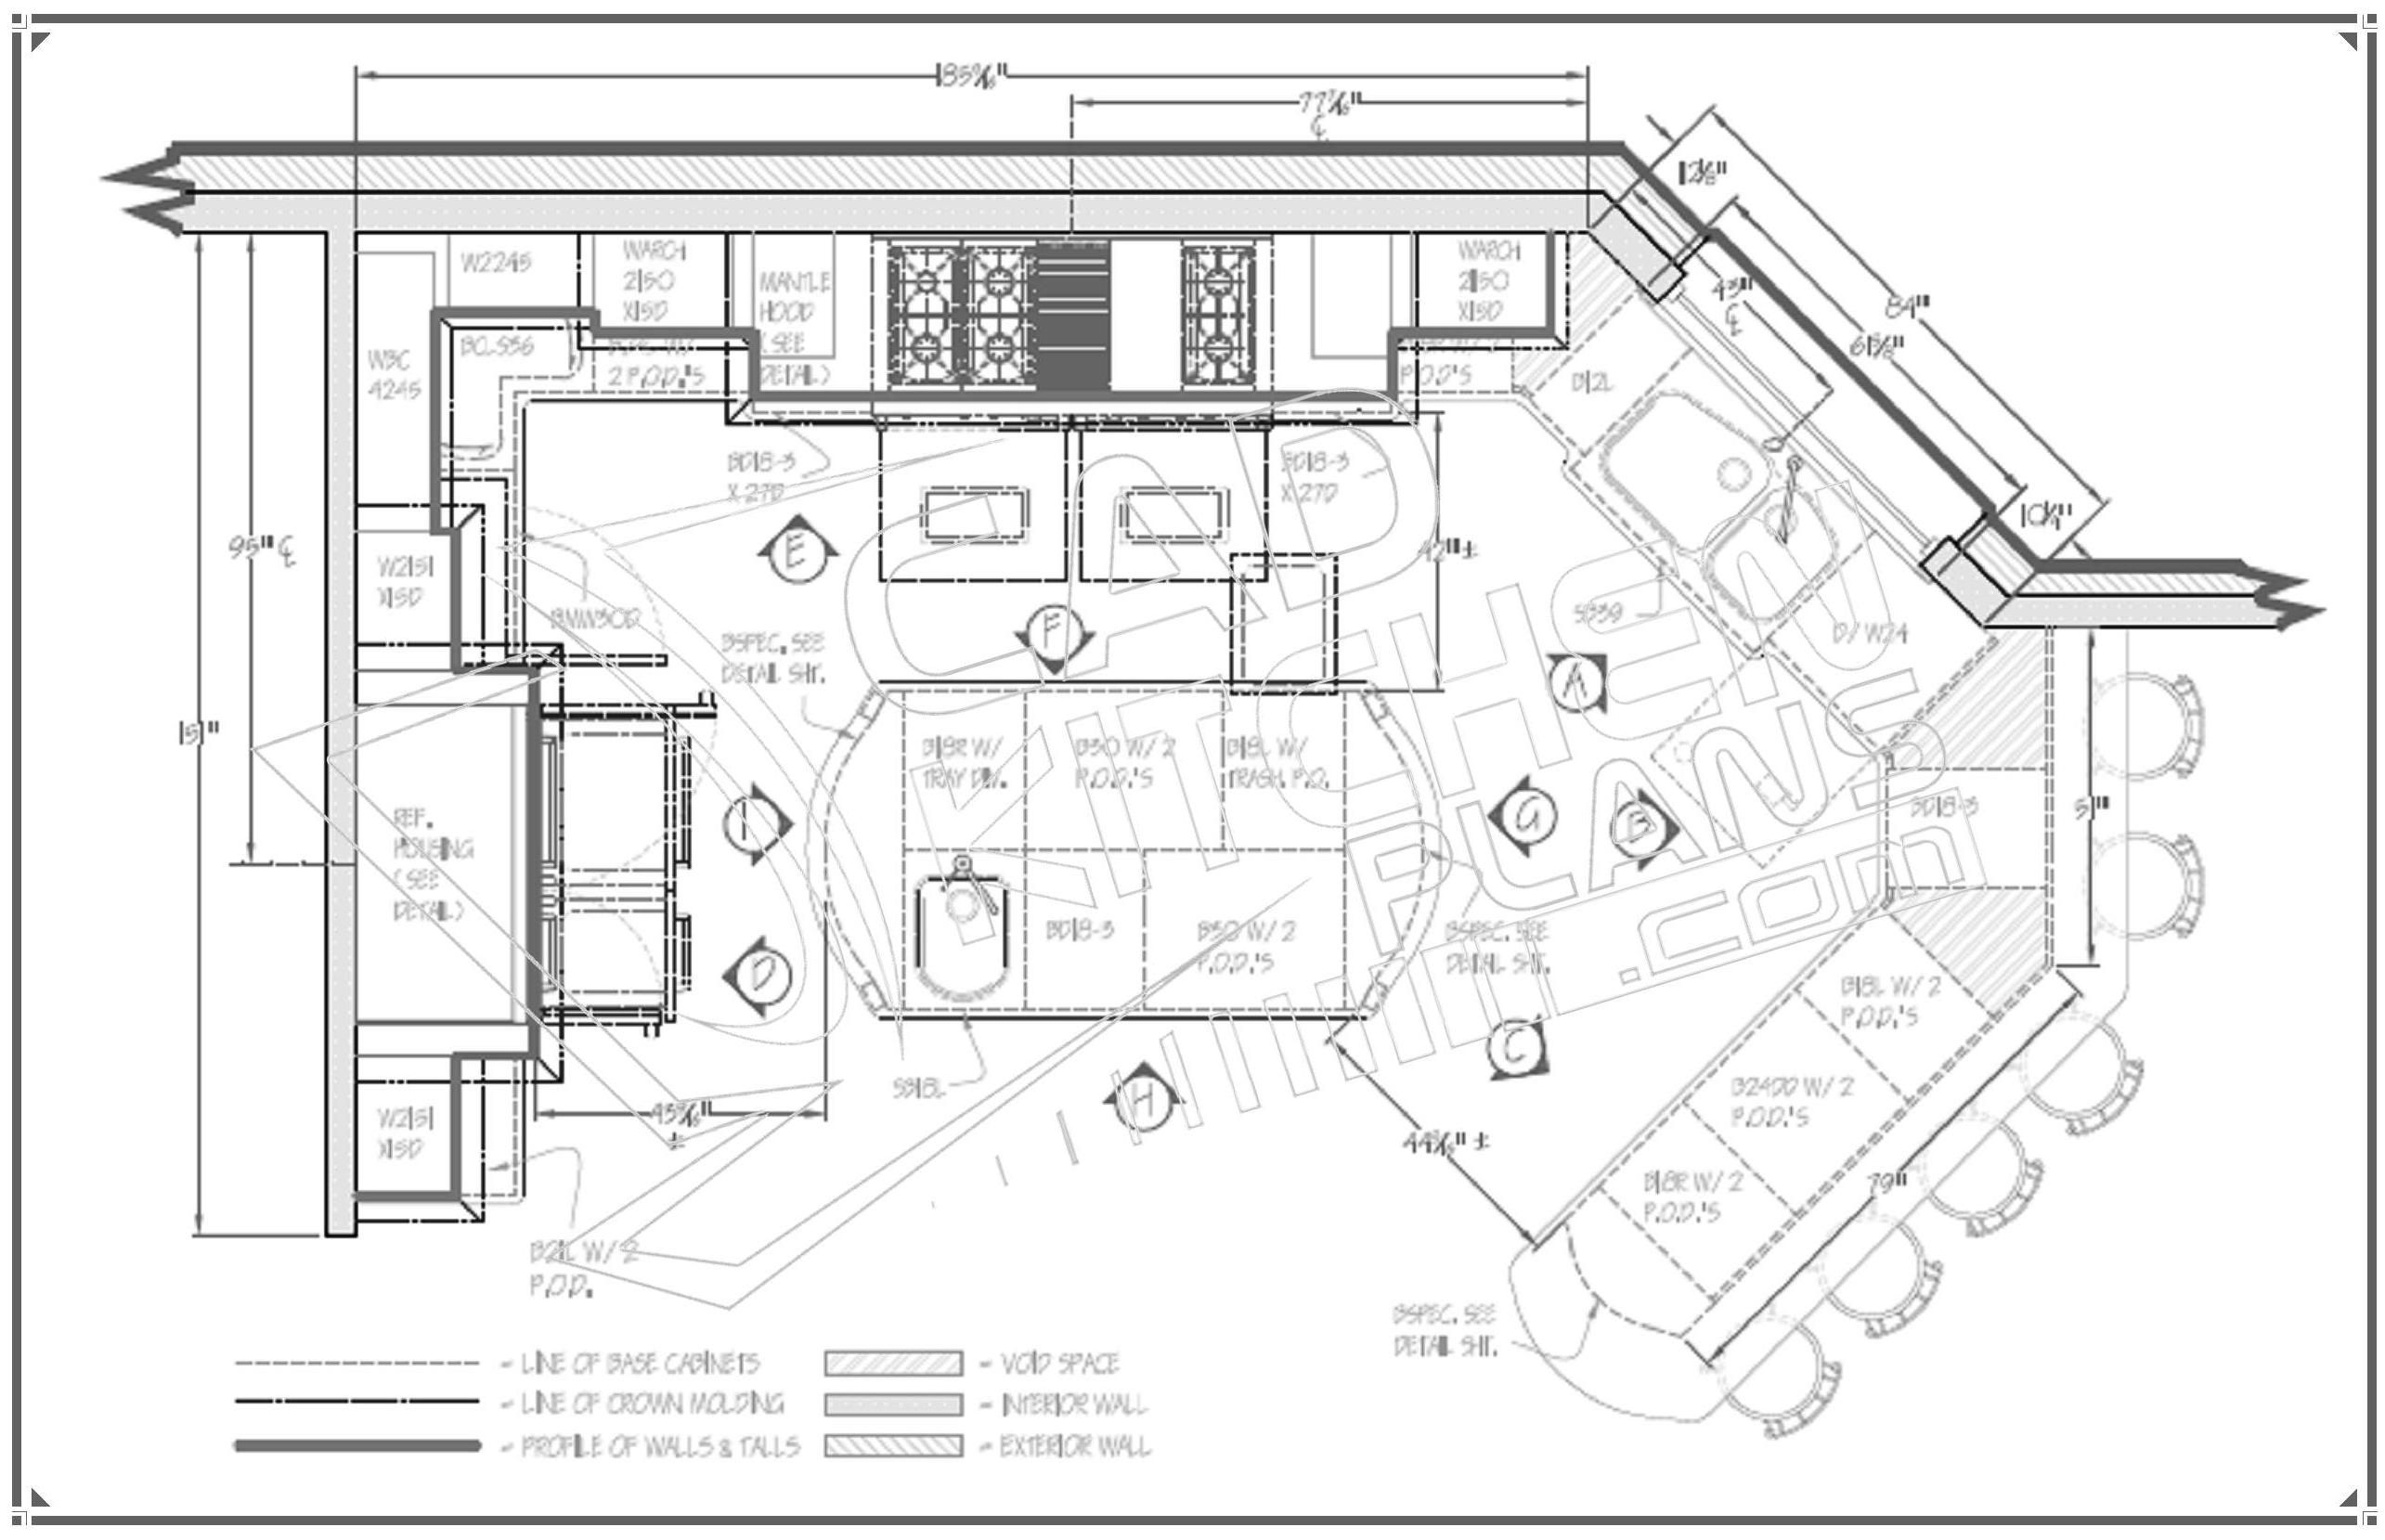 20 Pics Review Large Kitchen Floor Plan Ideas And Description In 2020 Kitchen Floor Plans Small Kitchen Floor Plans Commercial Kitchen Design